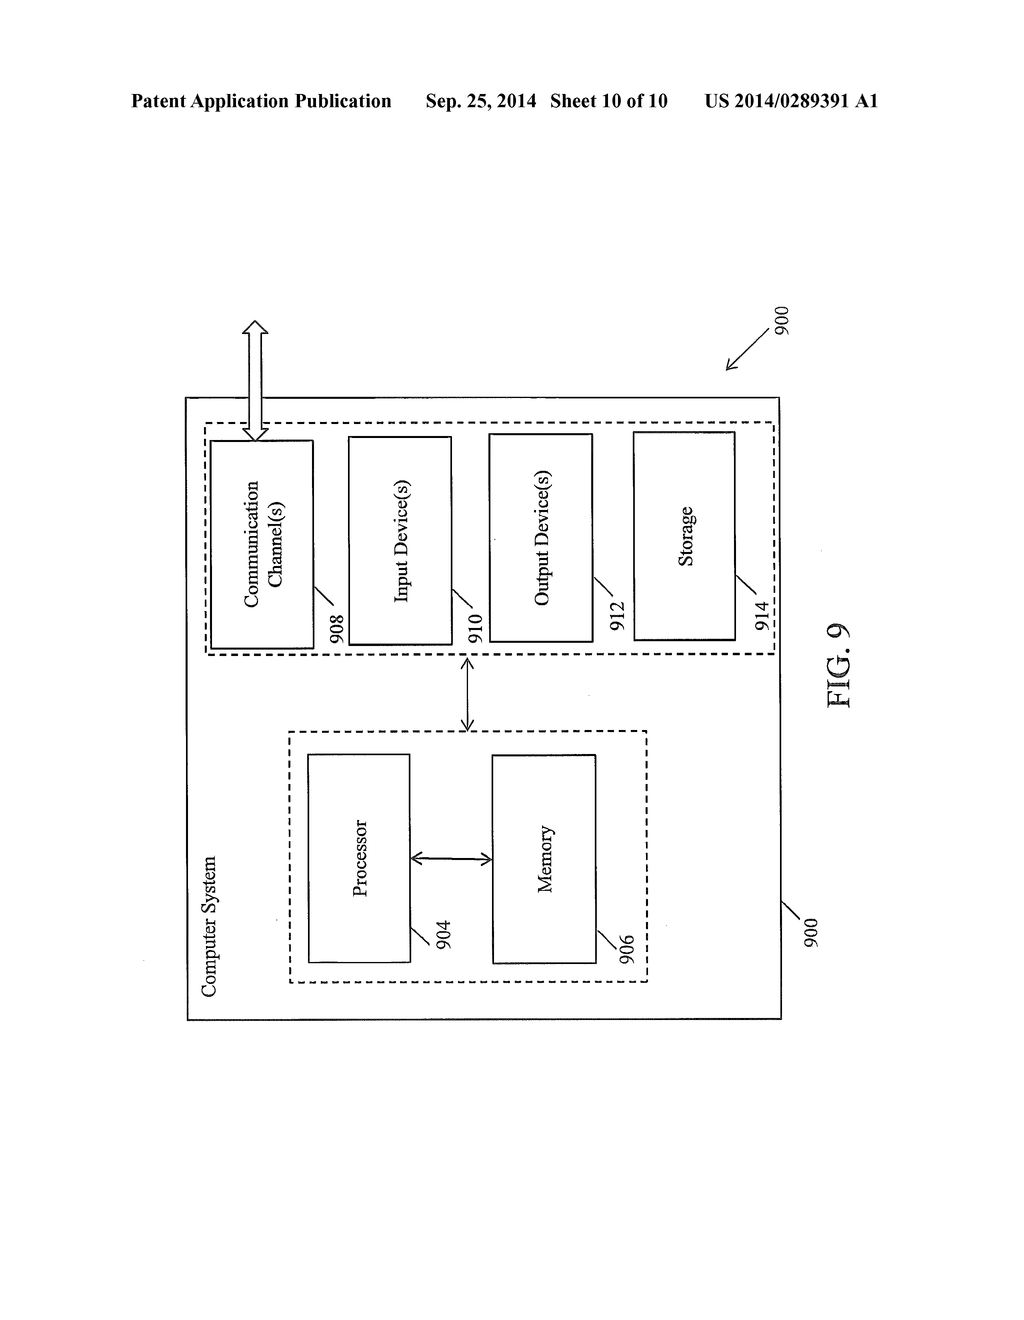 saas architecture diagram dpdt toggle switch wiring framework for facilitating implementation of multi tenant schematic and image 11